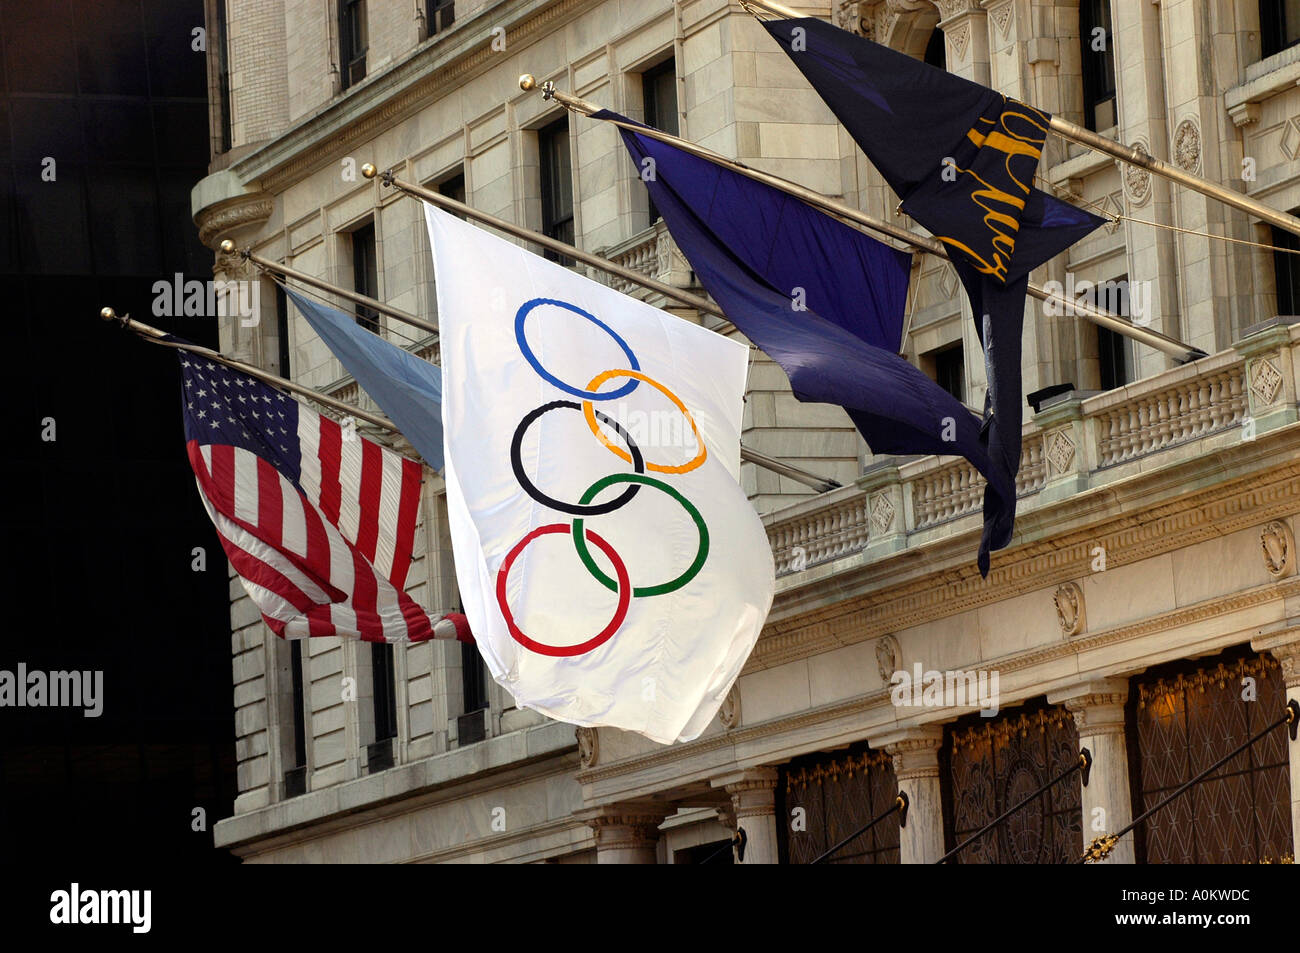 The Olympic flag flies with others at the Plaza Hotel The Evaluation Commission of the International Olympic Commission IOC is arriving in New York City for a four day assessment of the city s bid for the 2012 Olympic Games NYC2012 is decorating the city with banners and flags to greet the members of the IOC - Stock Image